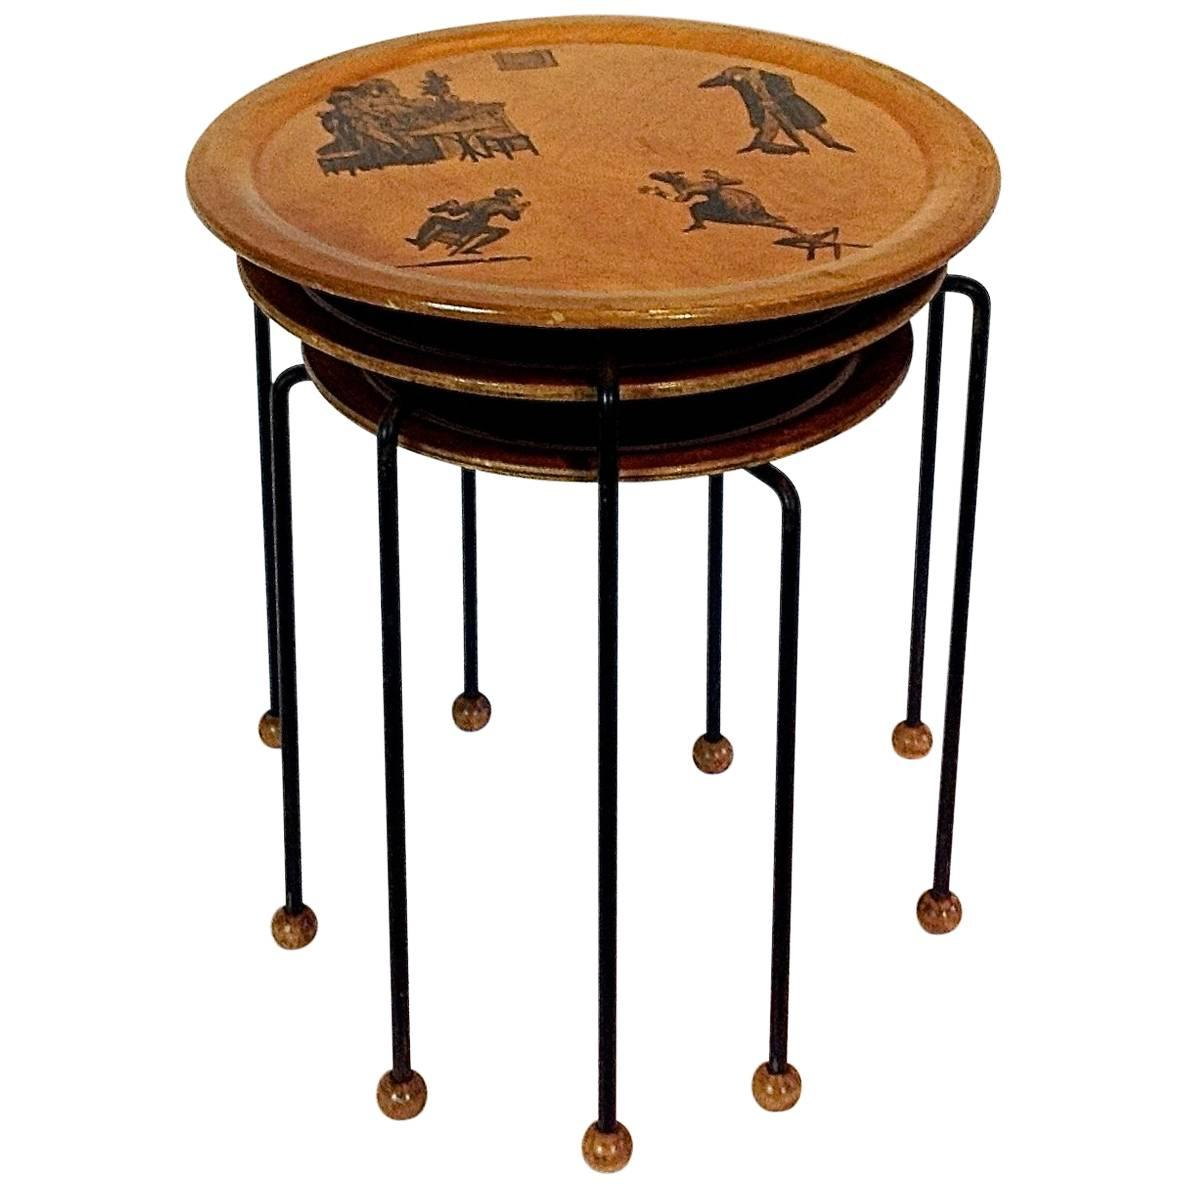 Tony Paul Tempo Group Series Nesting Tables